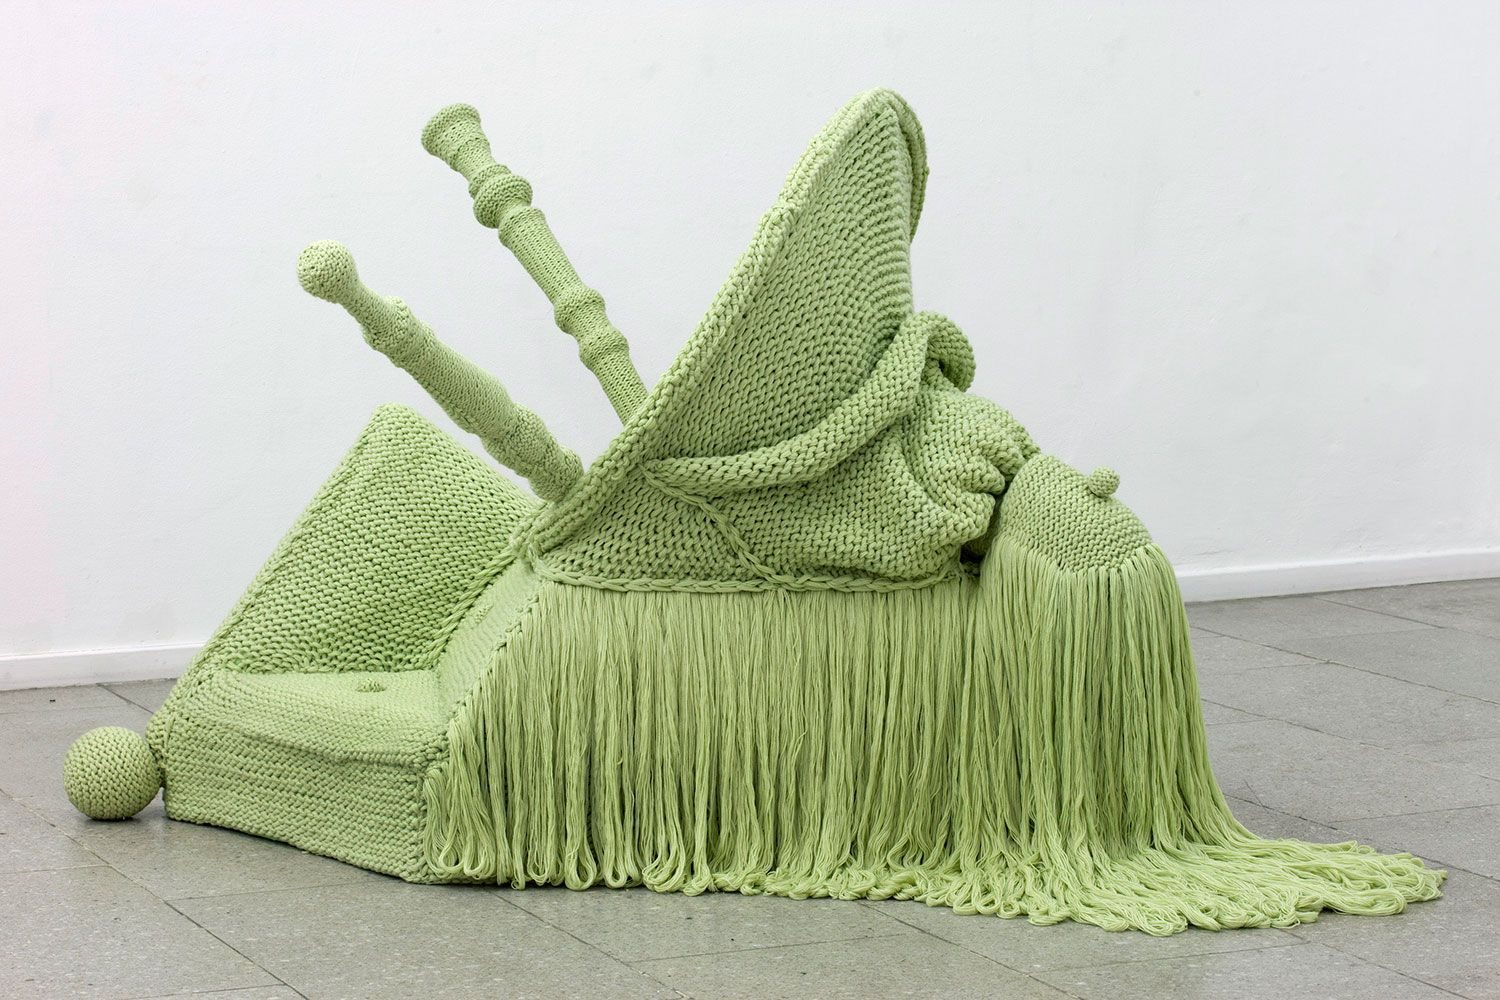 Extreme Knitting by Danish Textile Designer Isabel Berglund | Yellowtrace.